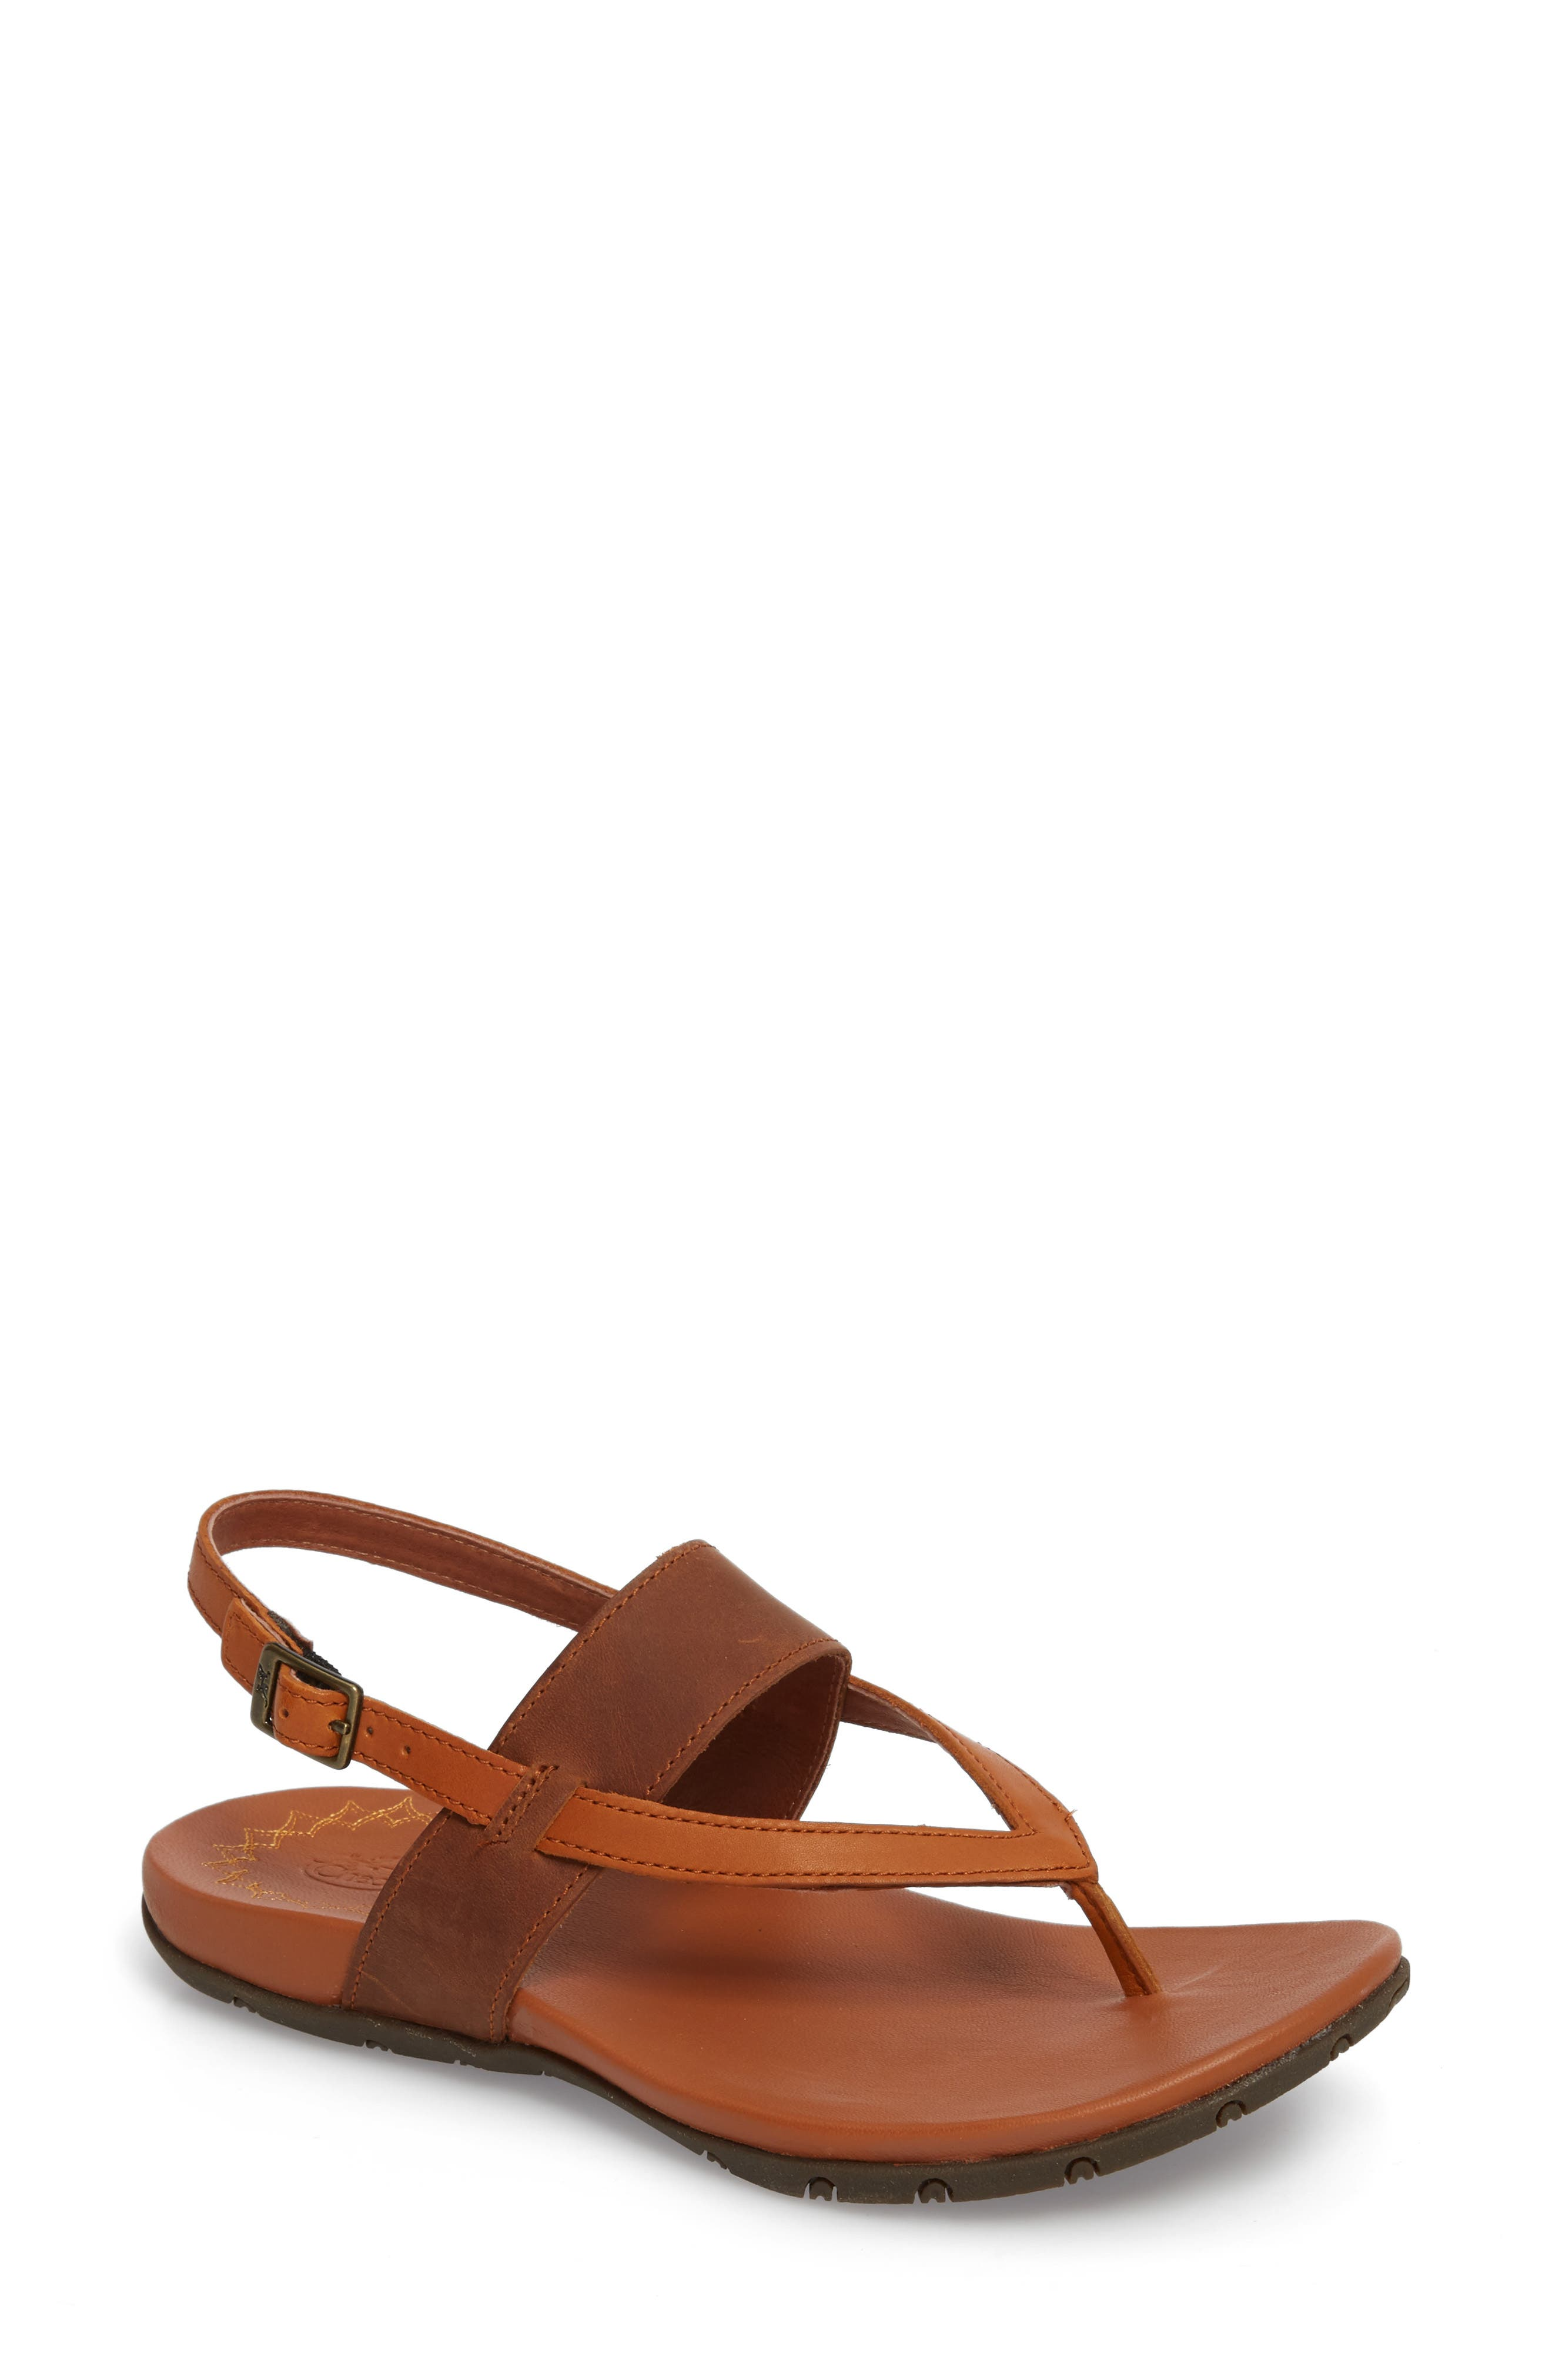 Maya II Sandal,                             Main thumbnail 1, color,                             Rust Leather